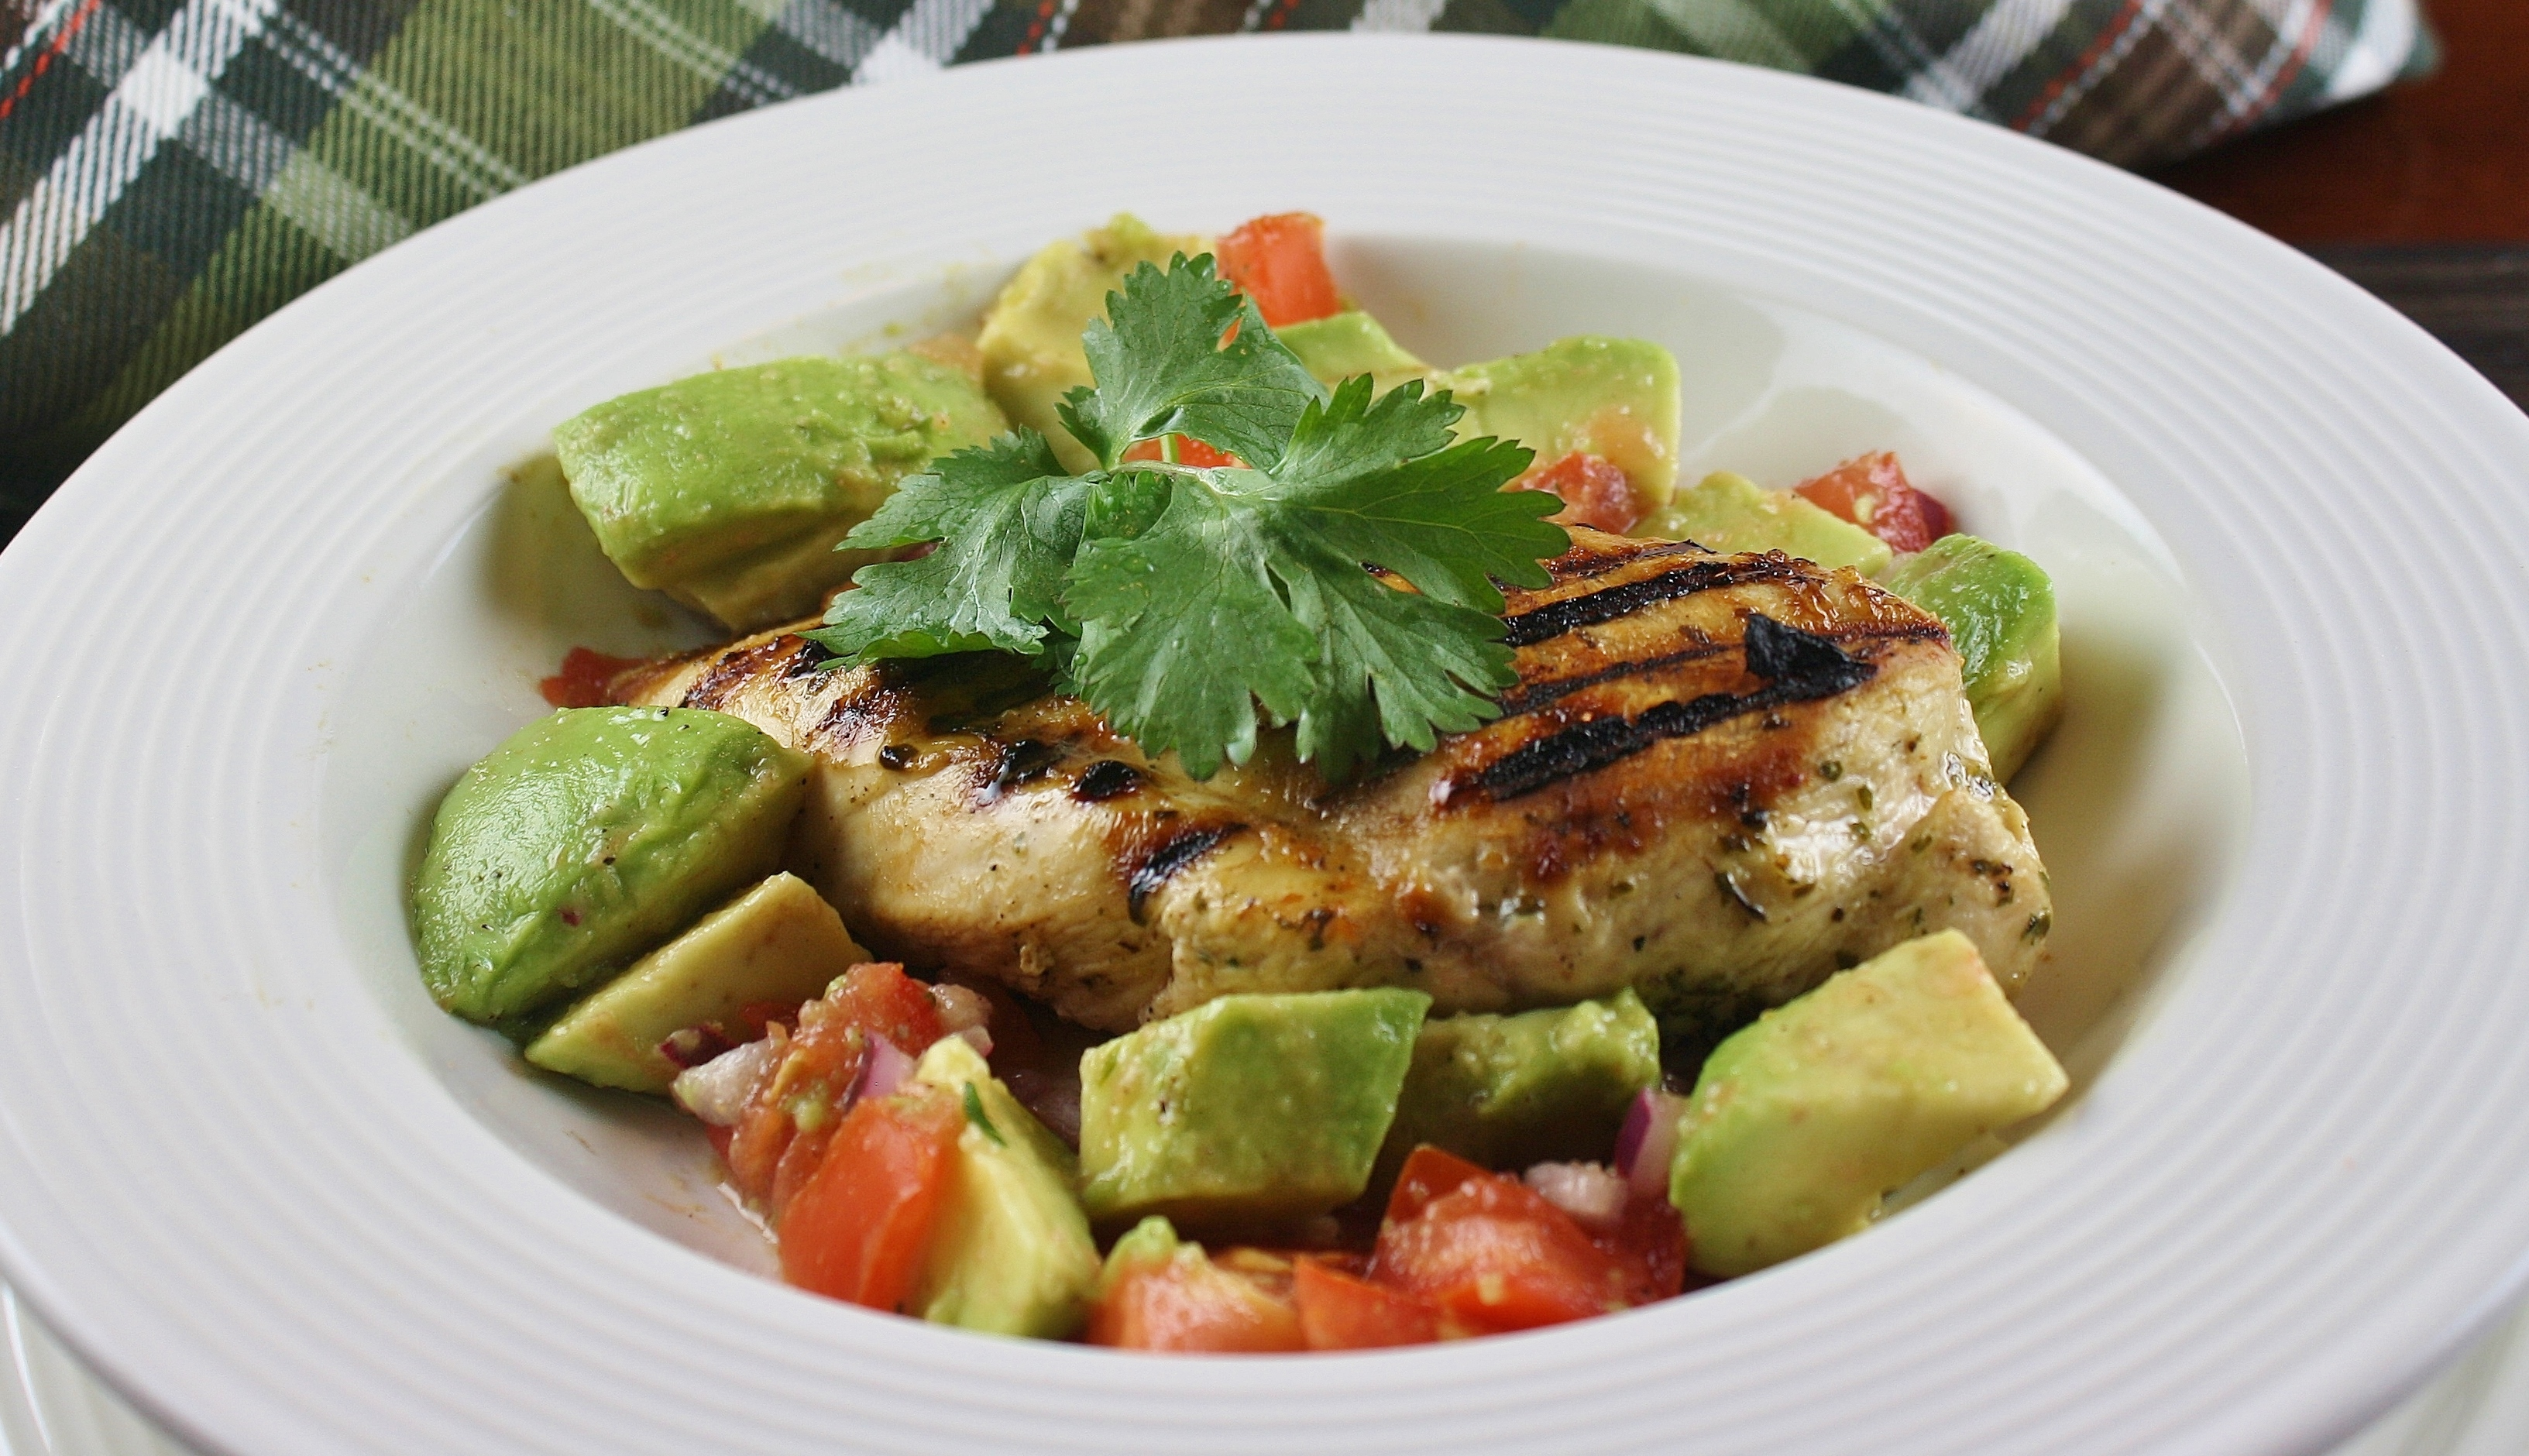 Cilantro-Lime Grilled Chicken naples34102